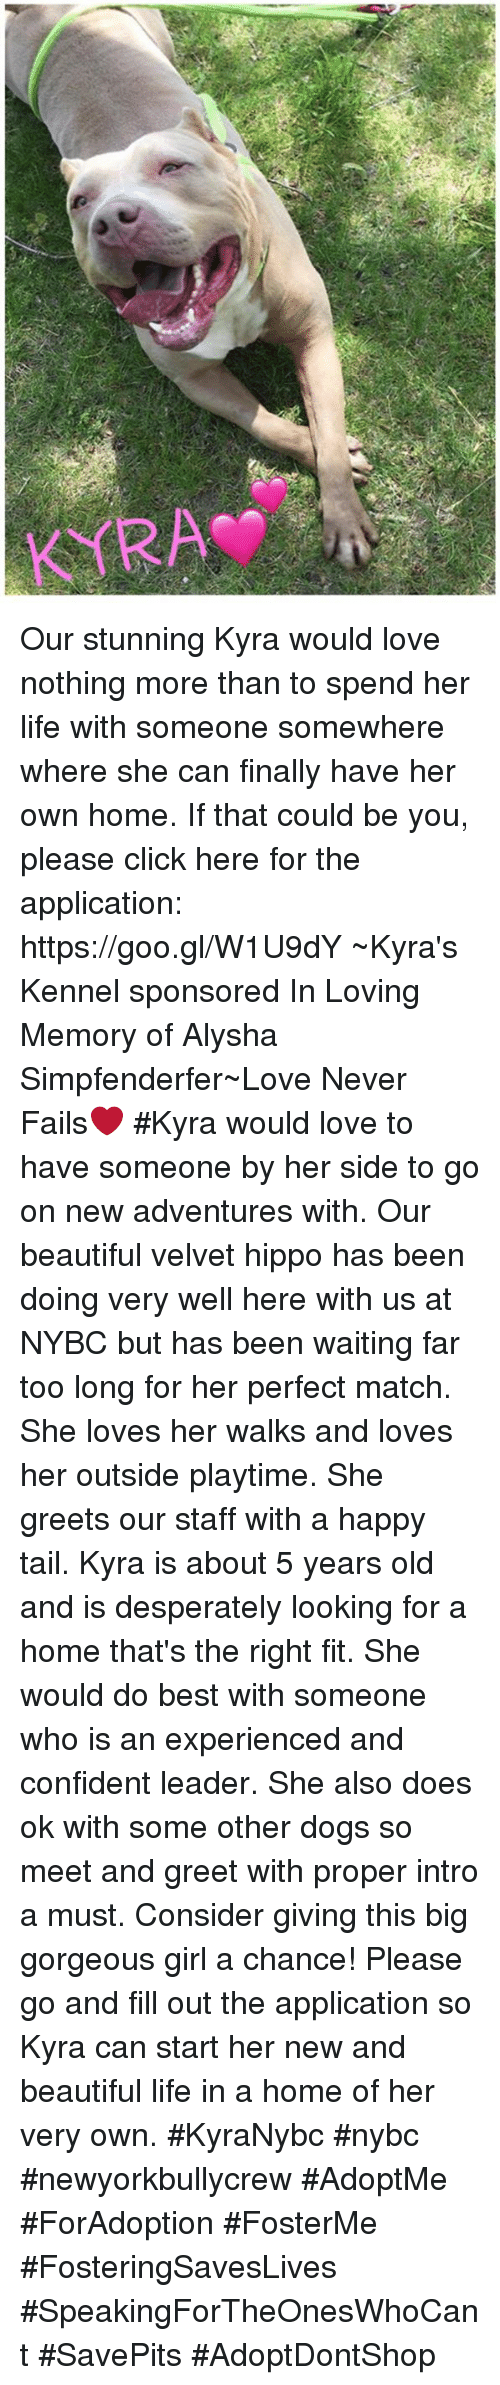 Beautiful, Click, and Dogs: Our stunning Kyra would love nothing more than to spend her life with someone somewhere where she can finally have her own home. If that could be you, please click here for the application: https://goo.gl/W1U9dY  ~Kyra's Kennel sponsored In Loving Memory of Alysha Simpfenderfer~Love Never Fails❤  #Kyra would love to have someone by her side to go on new adventures with. Our beautiful velvet hippo has been doing very well here with us at NYBC but has been waiting far too long for her perfect match. She loves her walks and loves her outside playtime. She greets our staff with a happy tail.   Kyra is about 5 years old and is desperately looking for a home that's the right fit. She would do best with someone who is an experienced and confident leader. She also does ok with some other dogs so meet and greet with proper intro a must.   Consider giving this big gorgeous girl a chance! Please go and fill out the application so Kyra can start her new and beautiful life in a home of her very own.  #KyraNybc #nybc #newyorkbullycrew #AdoptMe #ForAdoption #FosterMe #FosteringSavesLives #SpeakingForTheOnesWhoCant #SavePits #AdoptDontShop